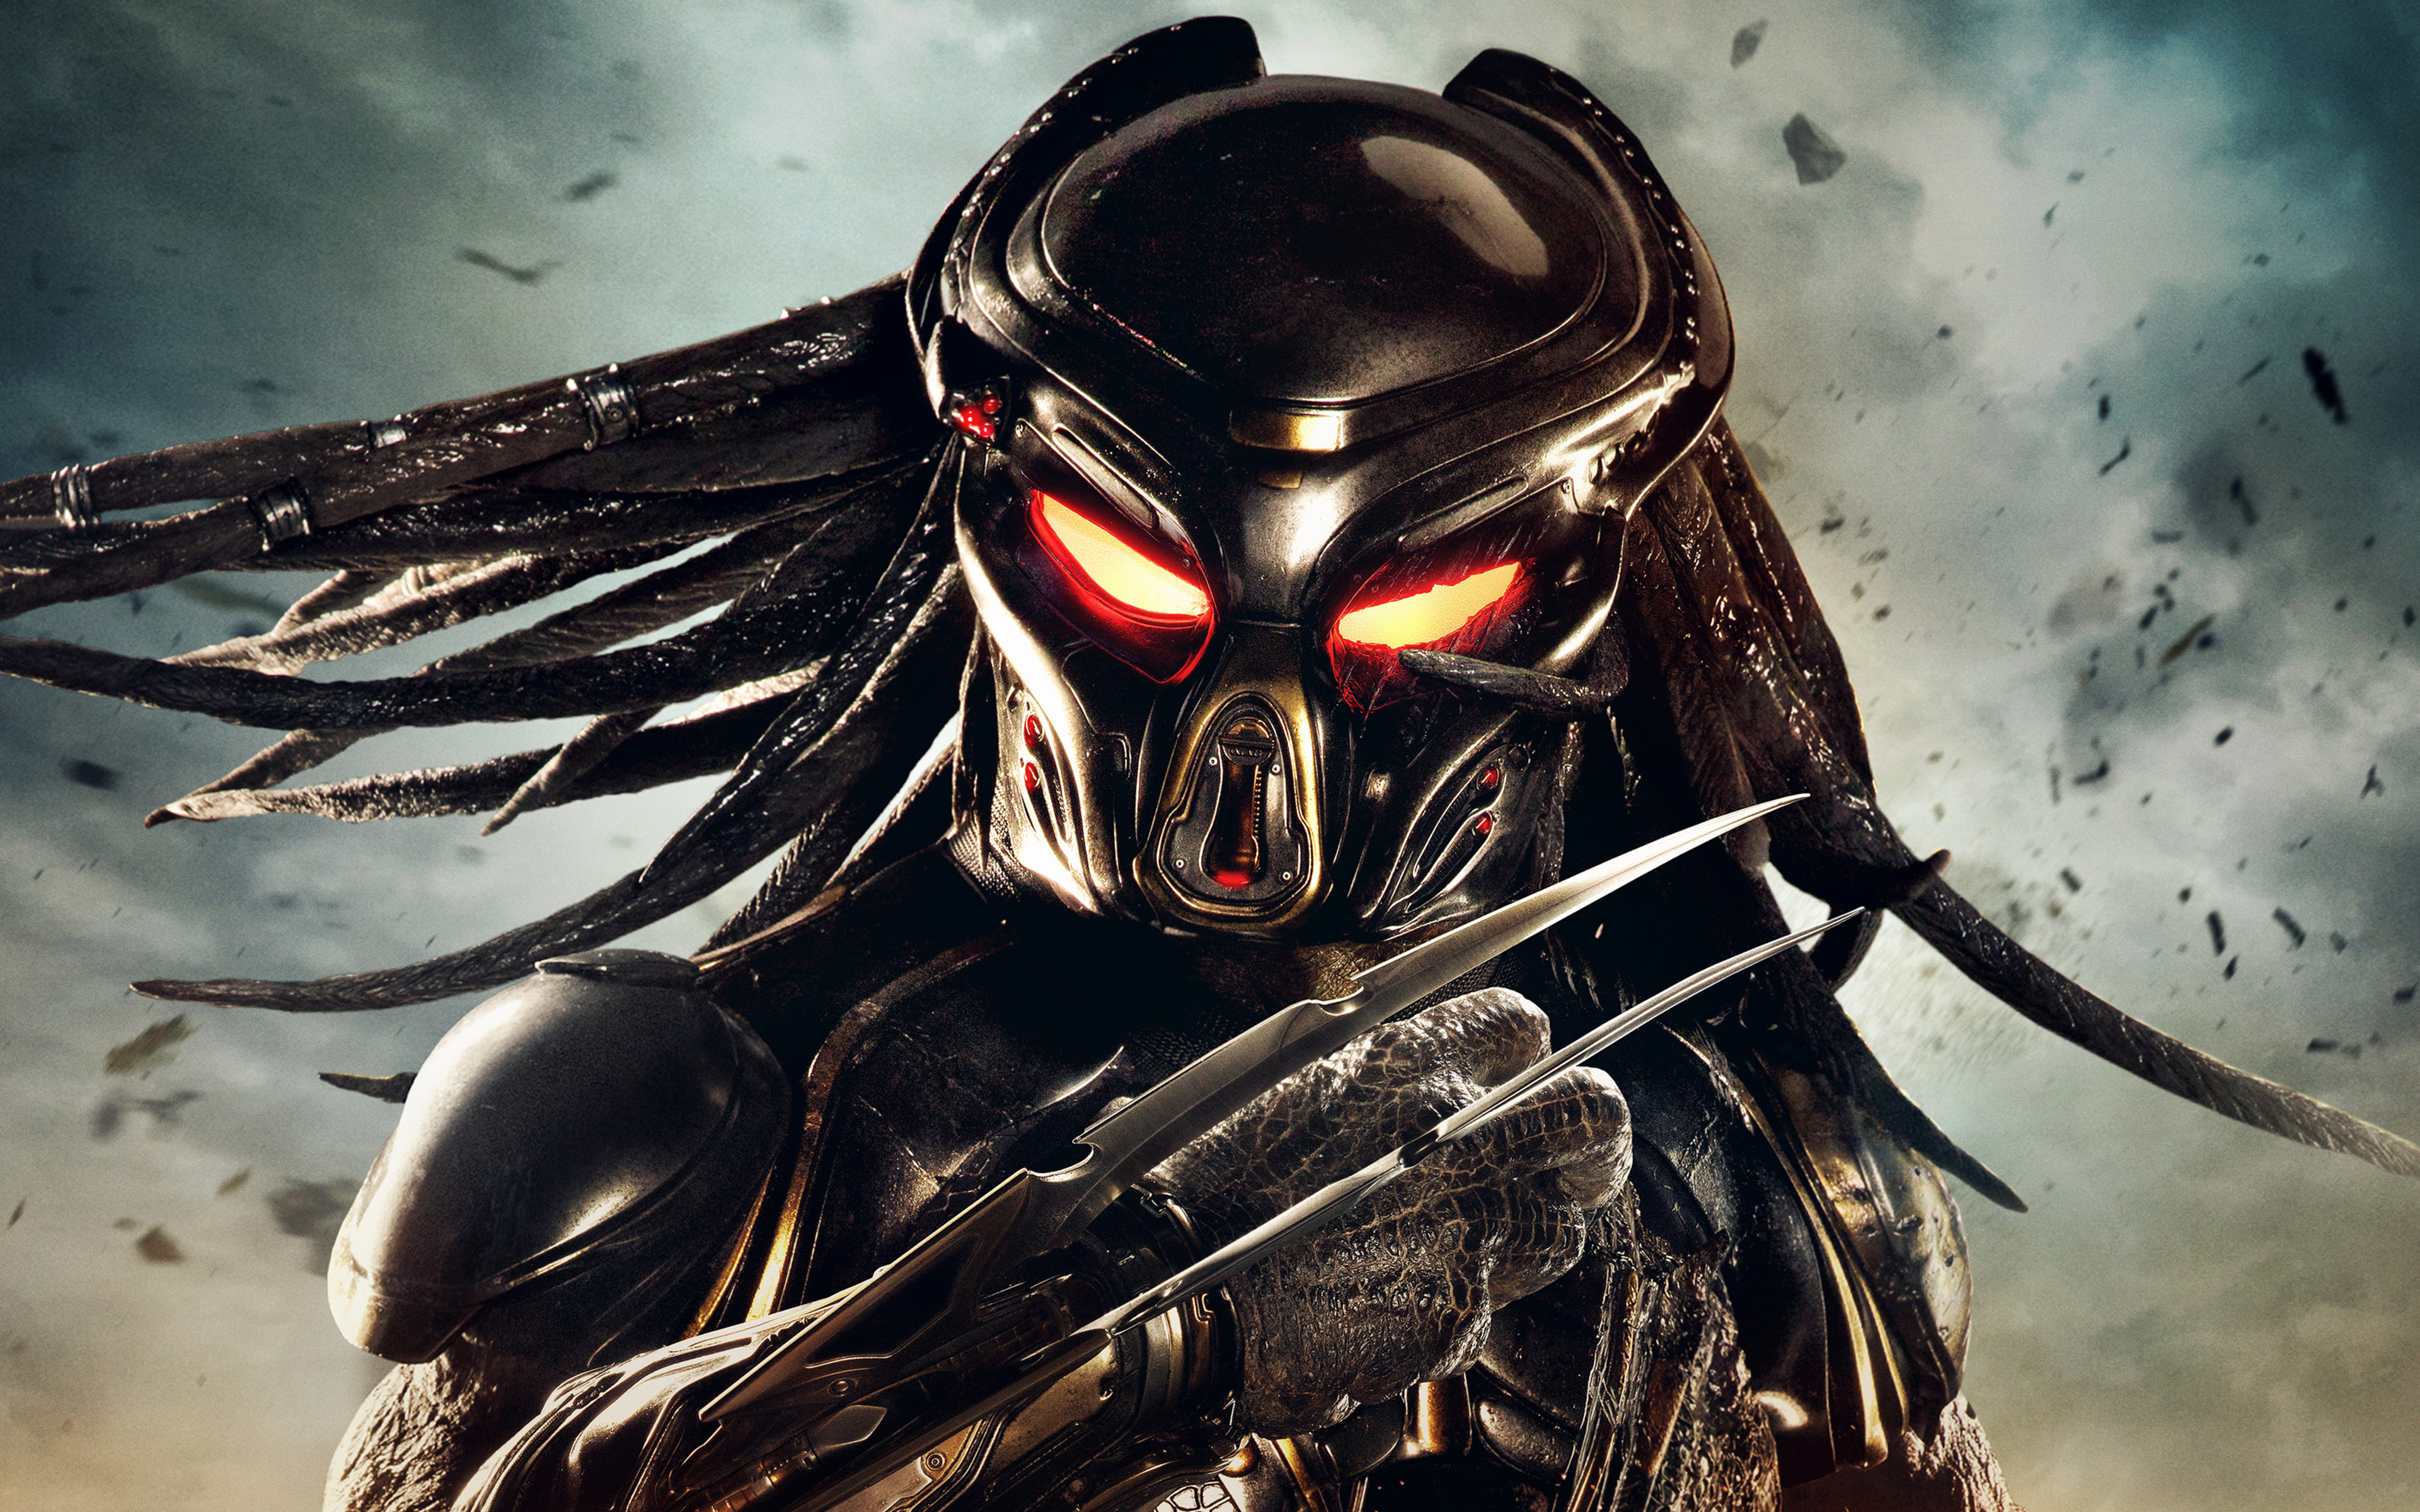 3840x2400 The Predator Movie 4k 4k HD 4k Wallpapers. Images. Backgrounds. Photos and Pictures